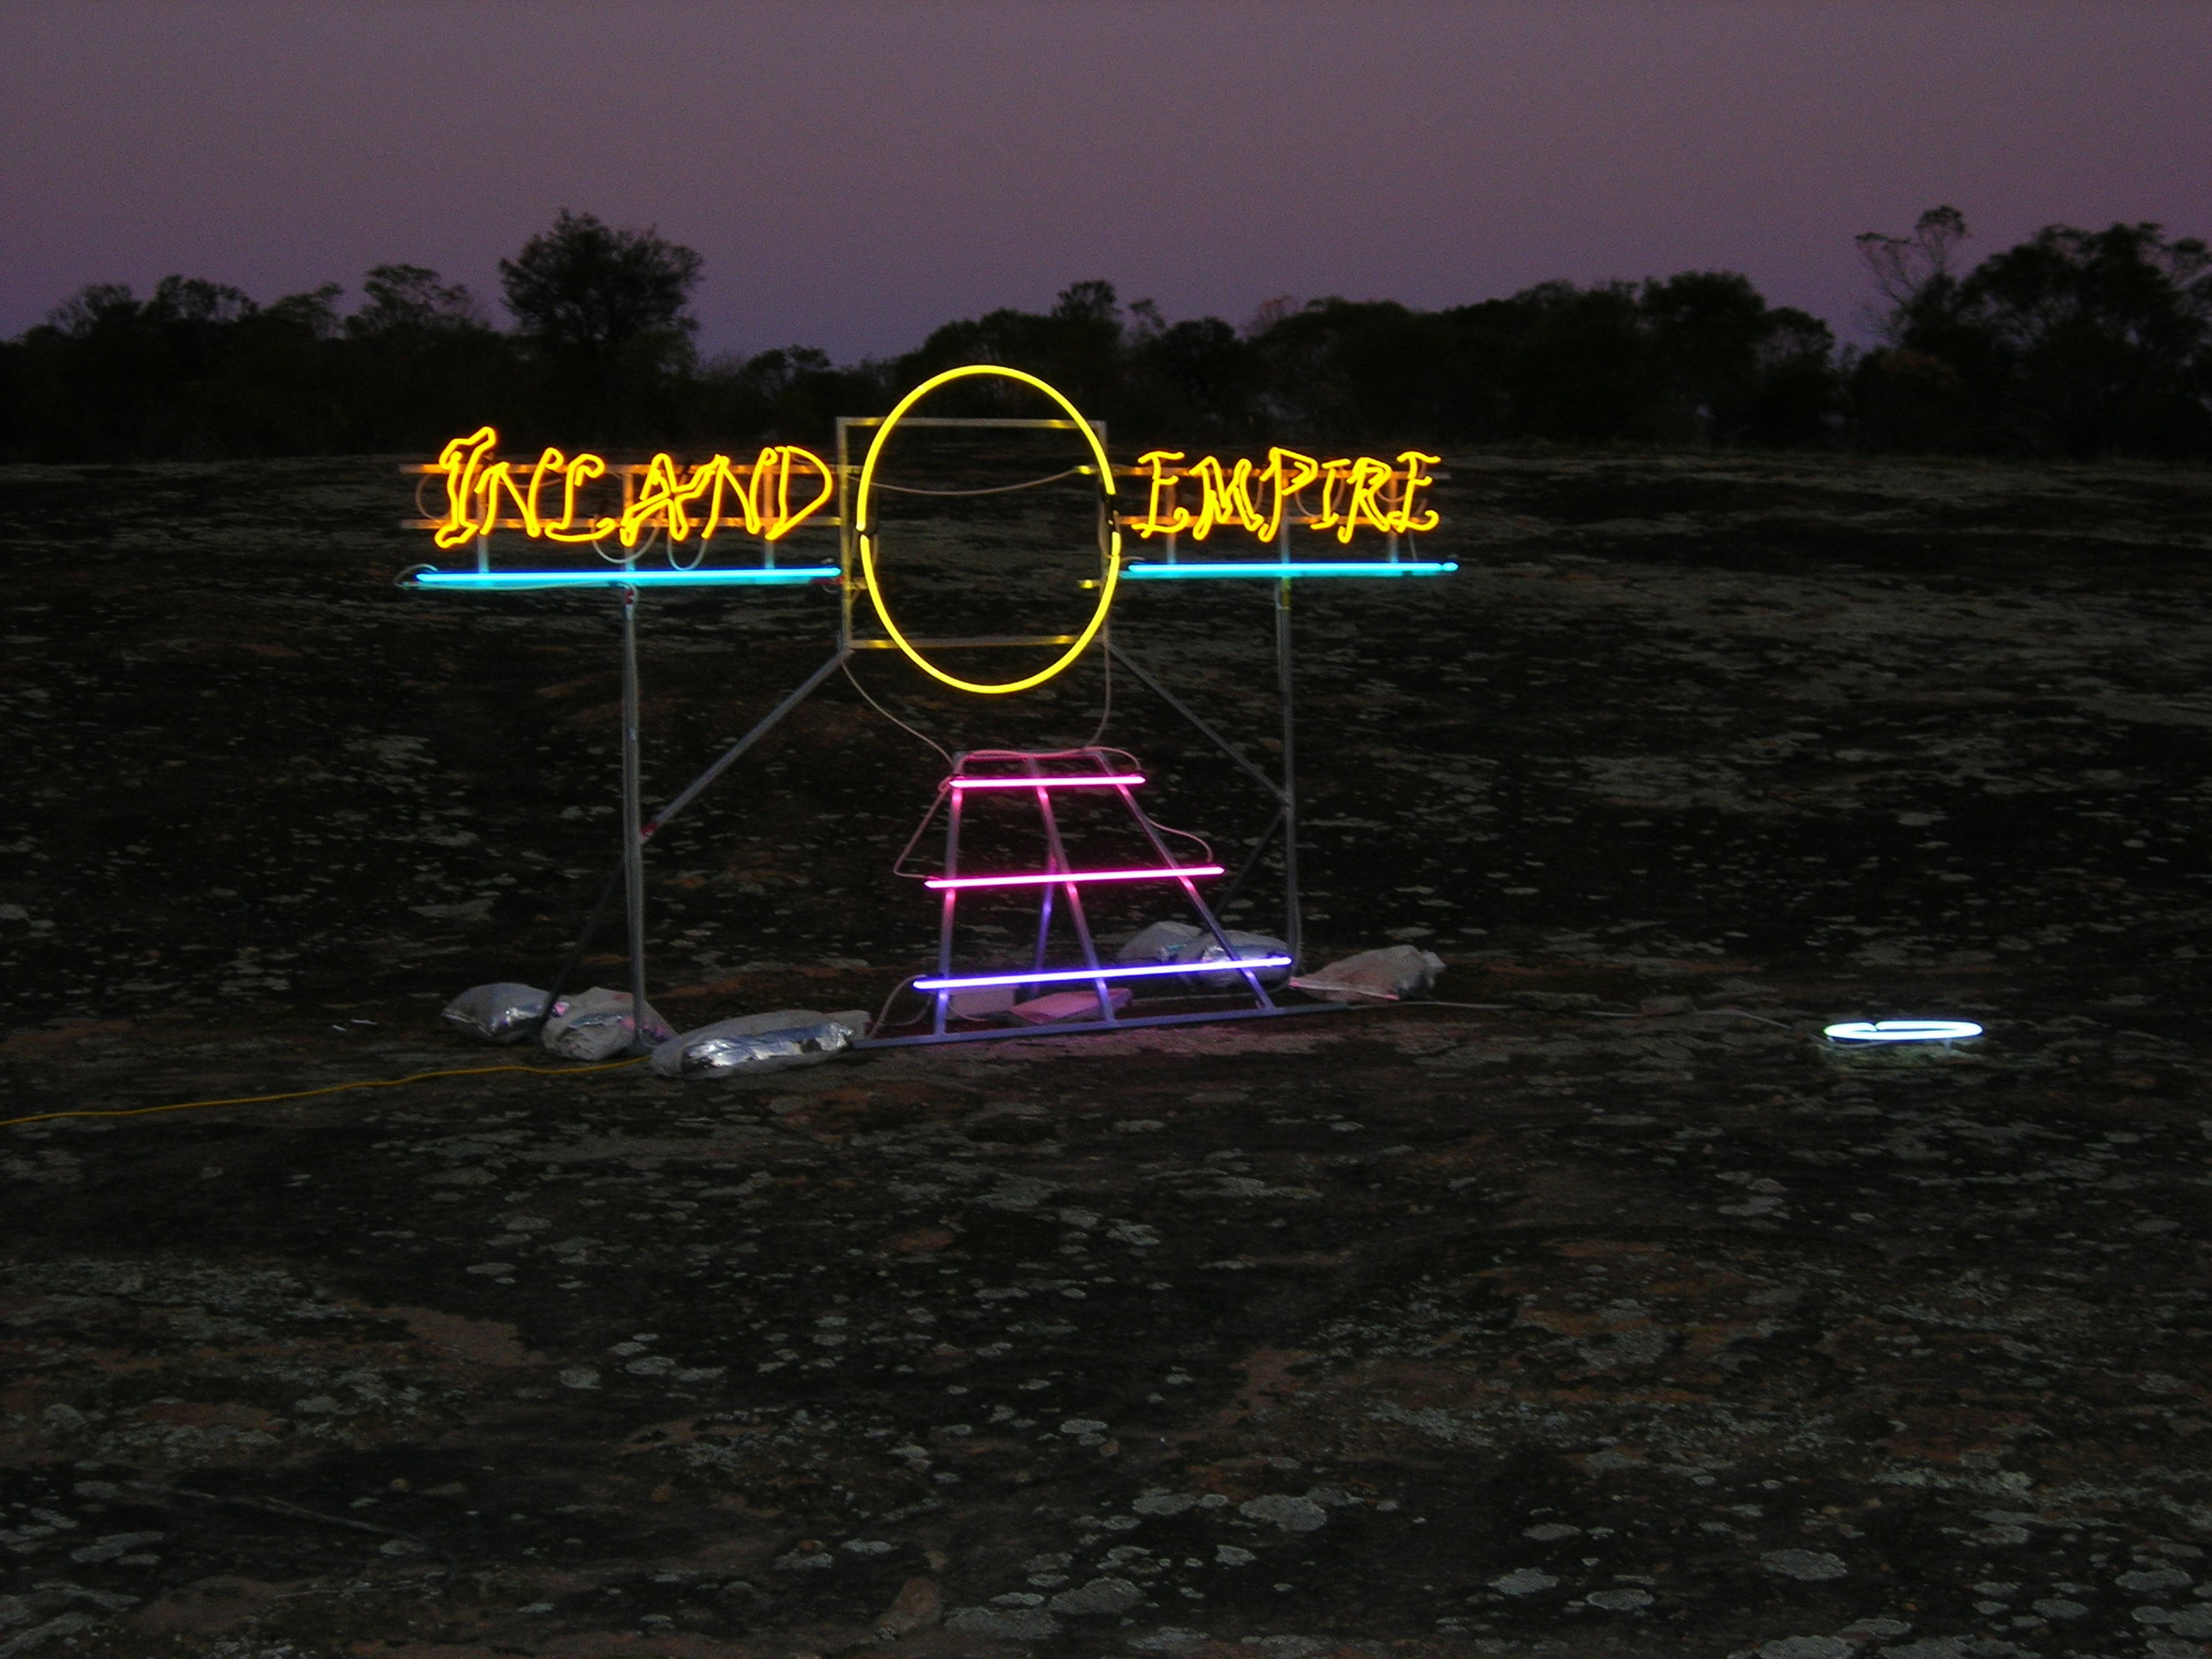 7 janet burchill and jennifer mccamley; culture jamming at heide: sophie Knezic,  melbourne    Janet Burchill and Jennifer McCamley,  Inland Empire , 2008, installation view, Kellerberrin, Western Australia, 2008; neon tubing, electrical components, scaffolding, dimensions variable; image courtesy the artists and Neon Parc, Melbourne; © the artists